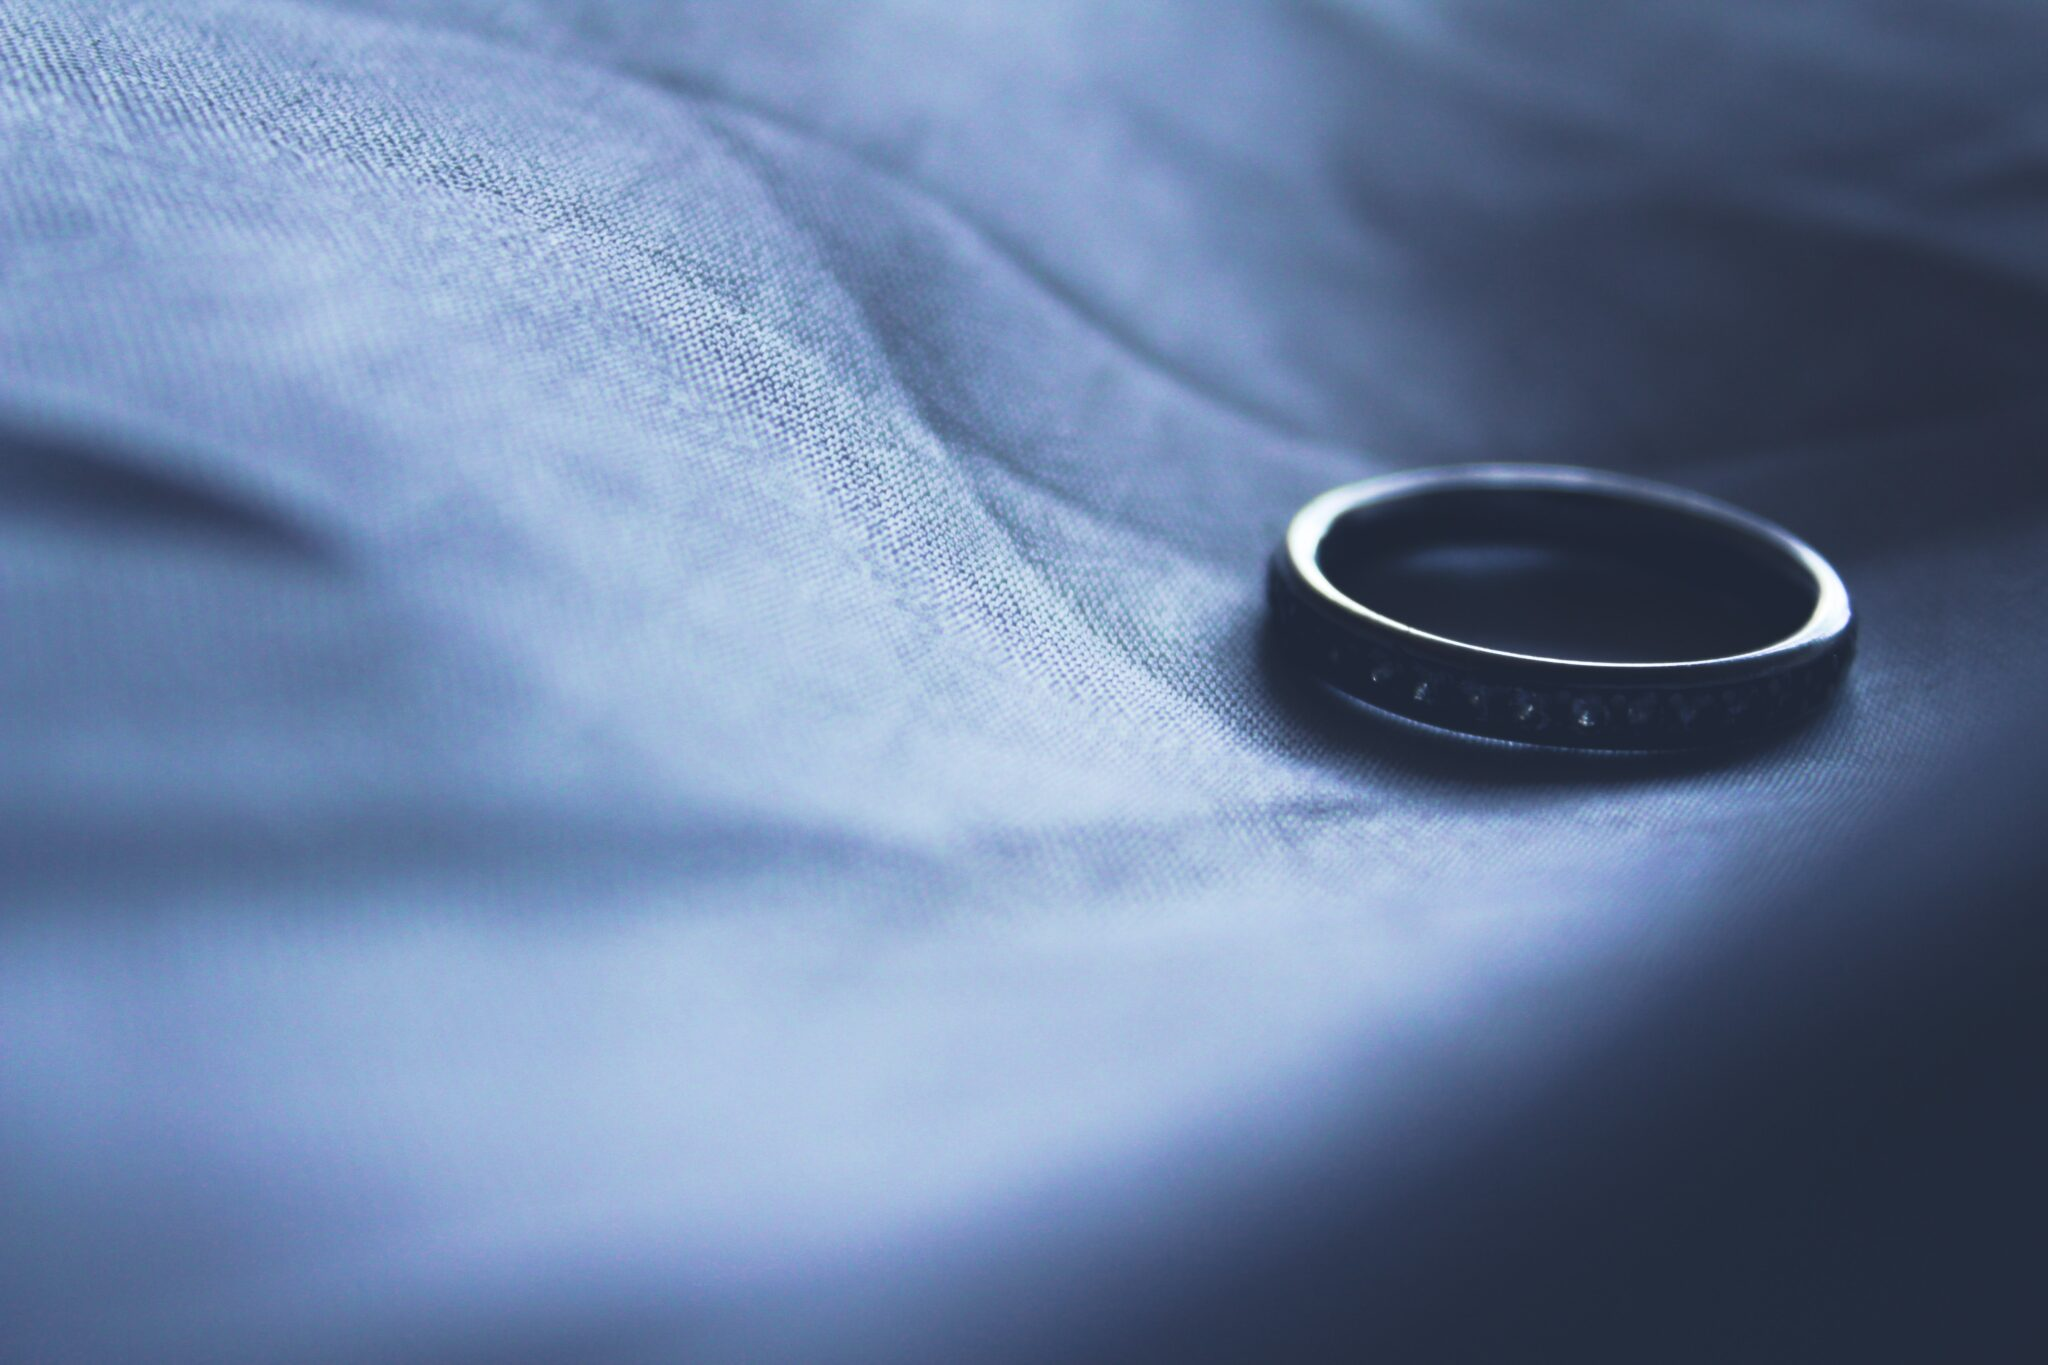 Single wedding ring laying on fabric, for BGS Law blog on Difference Between Absolute and Limited Divorces